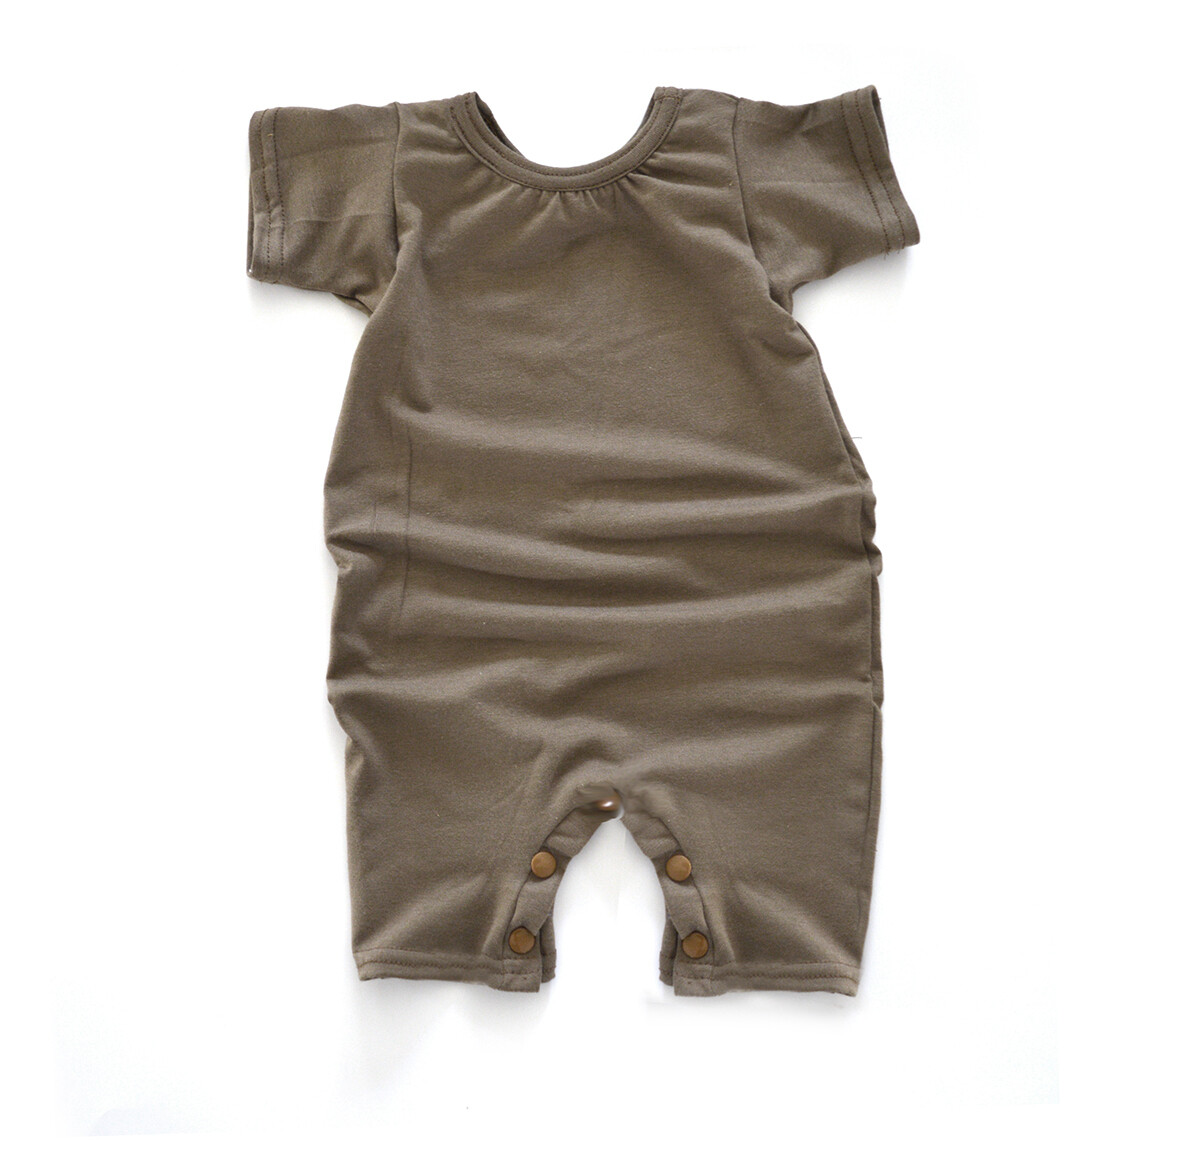 Little Sprout Short Sleeve Baby Romper - Tencel - Earth